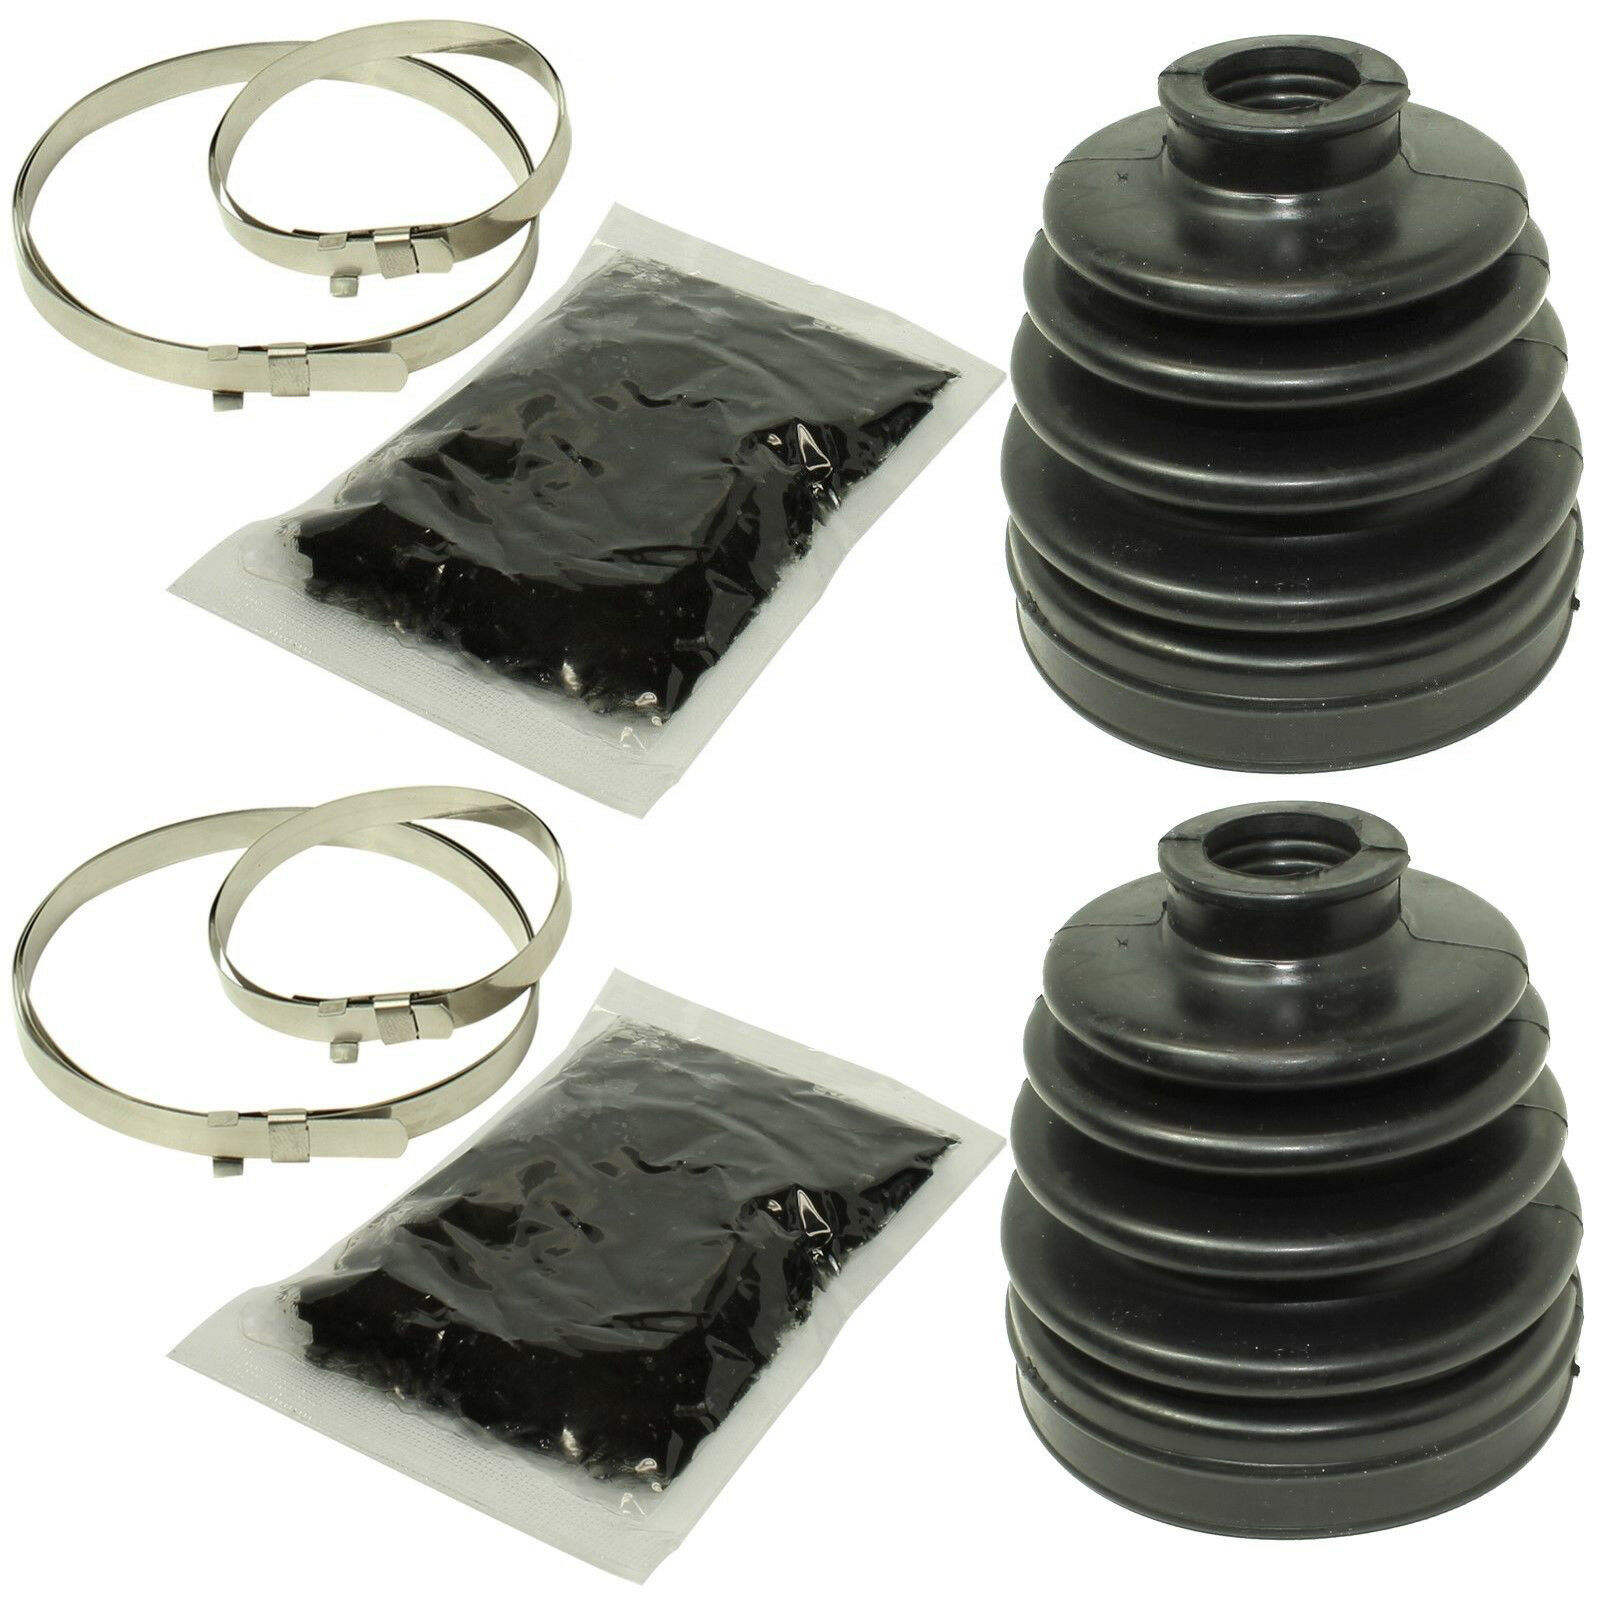 REAR AXLE OUTER INNER CV BOOT <span class=keywords><strong>KIT</strong></span> Fits For POLARIS SPORTSMAN 500 EFI 2006-2008